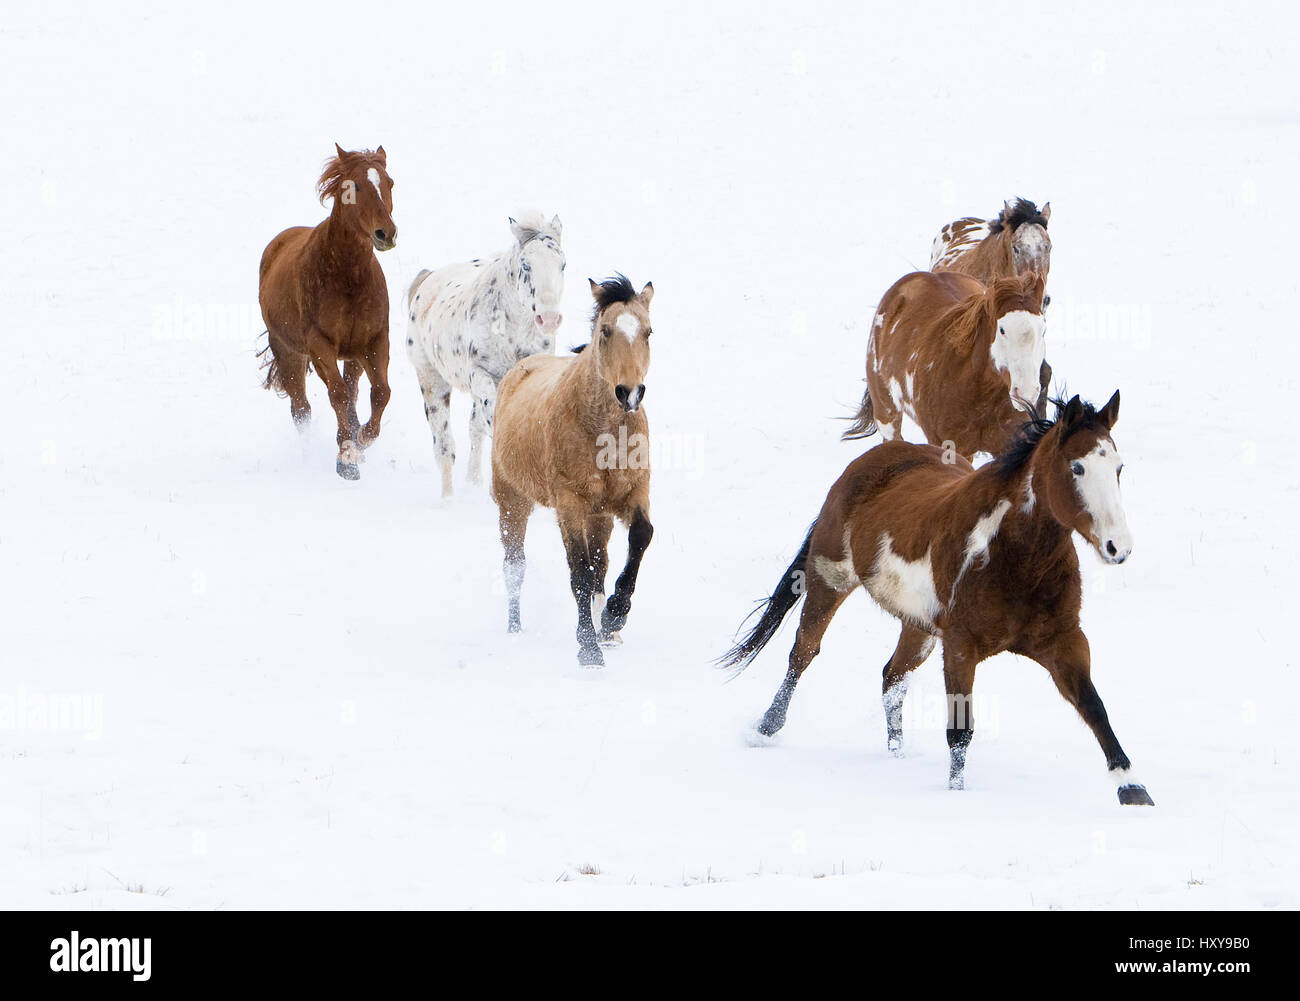 Horses running in snow, Flitner Ranch, Shell, Wyoming, USA. - Stock Image